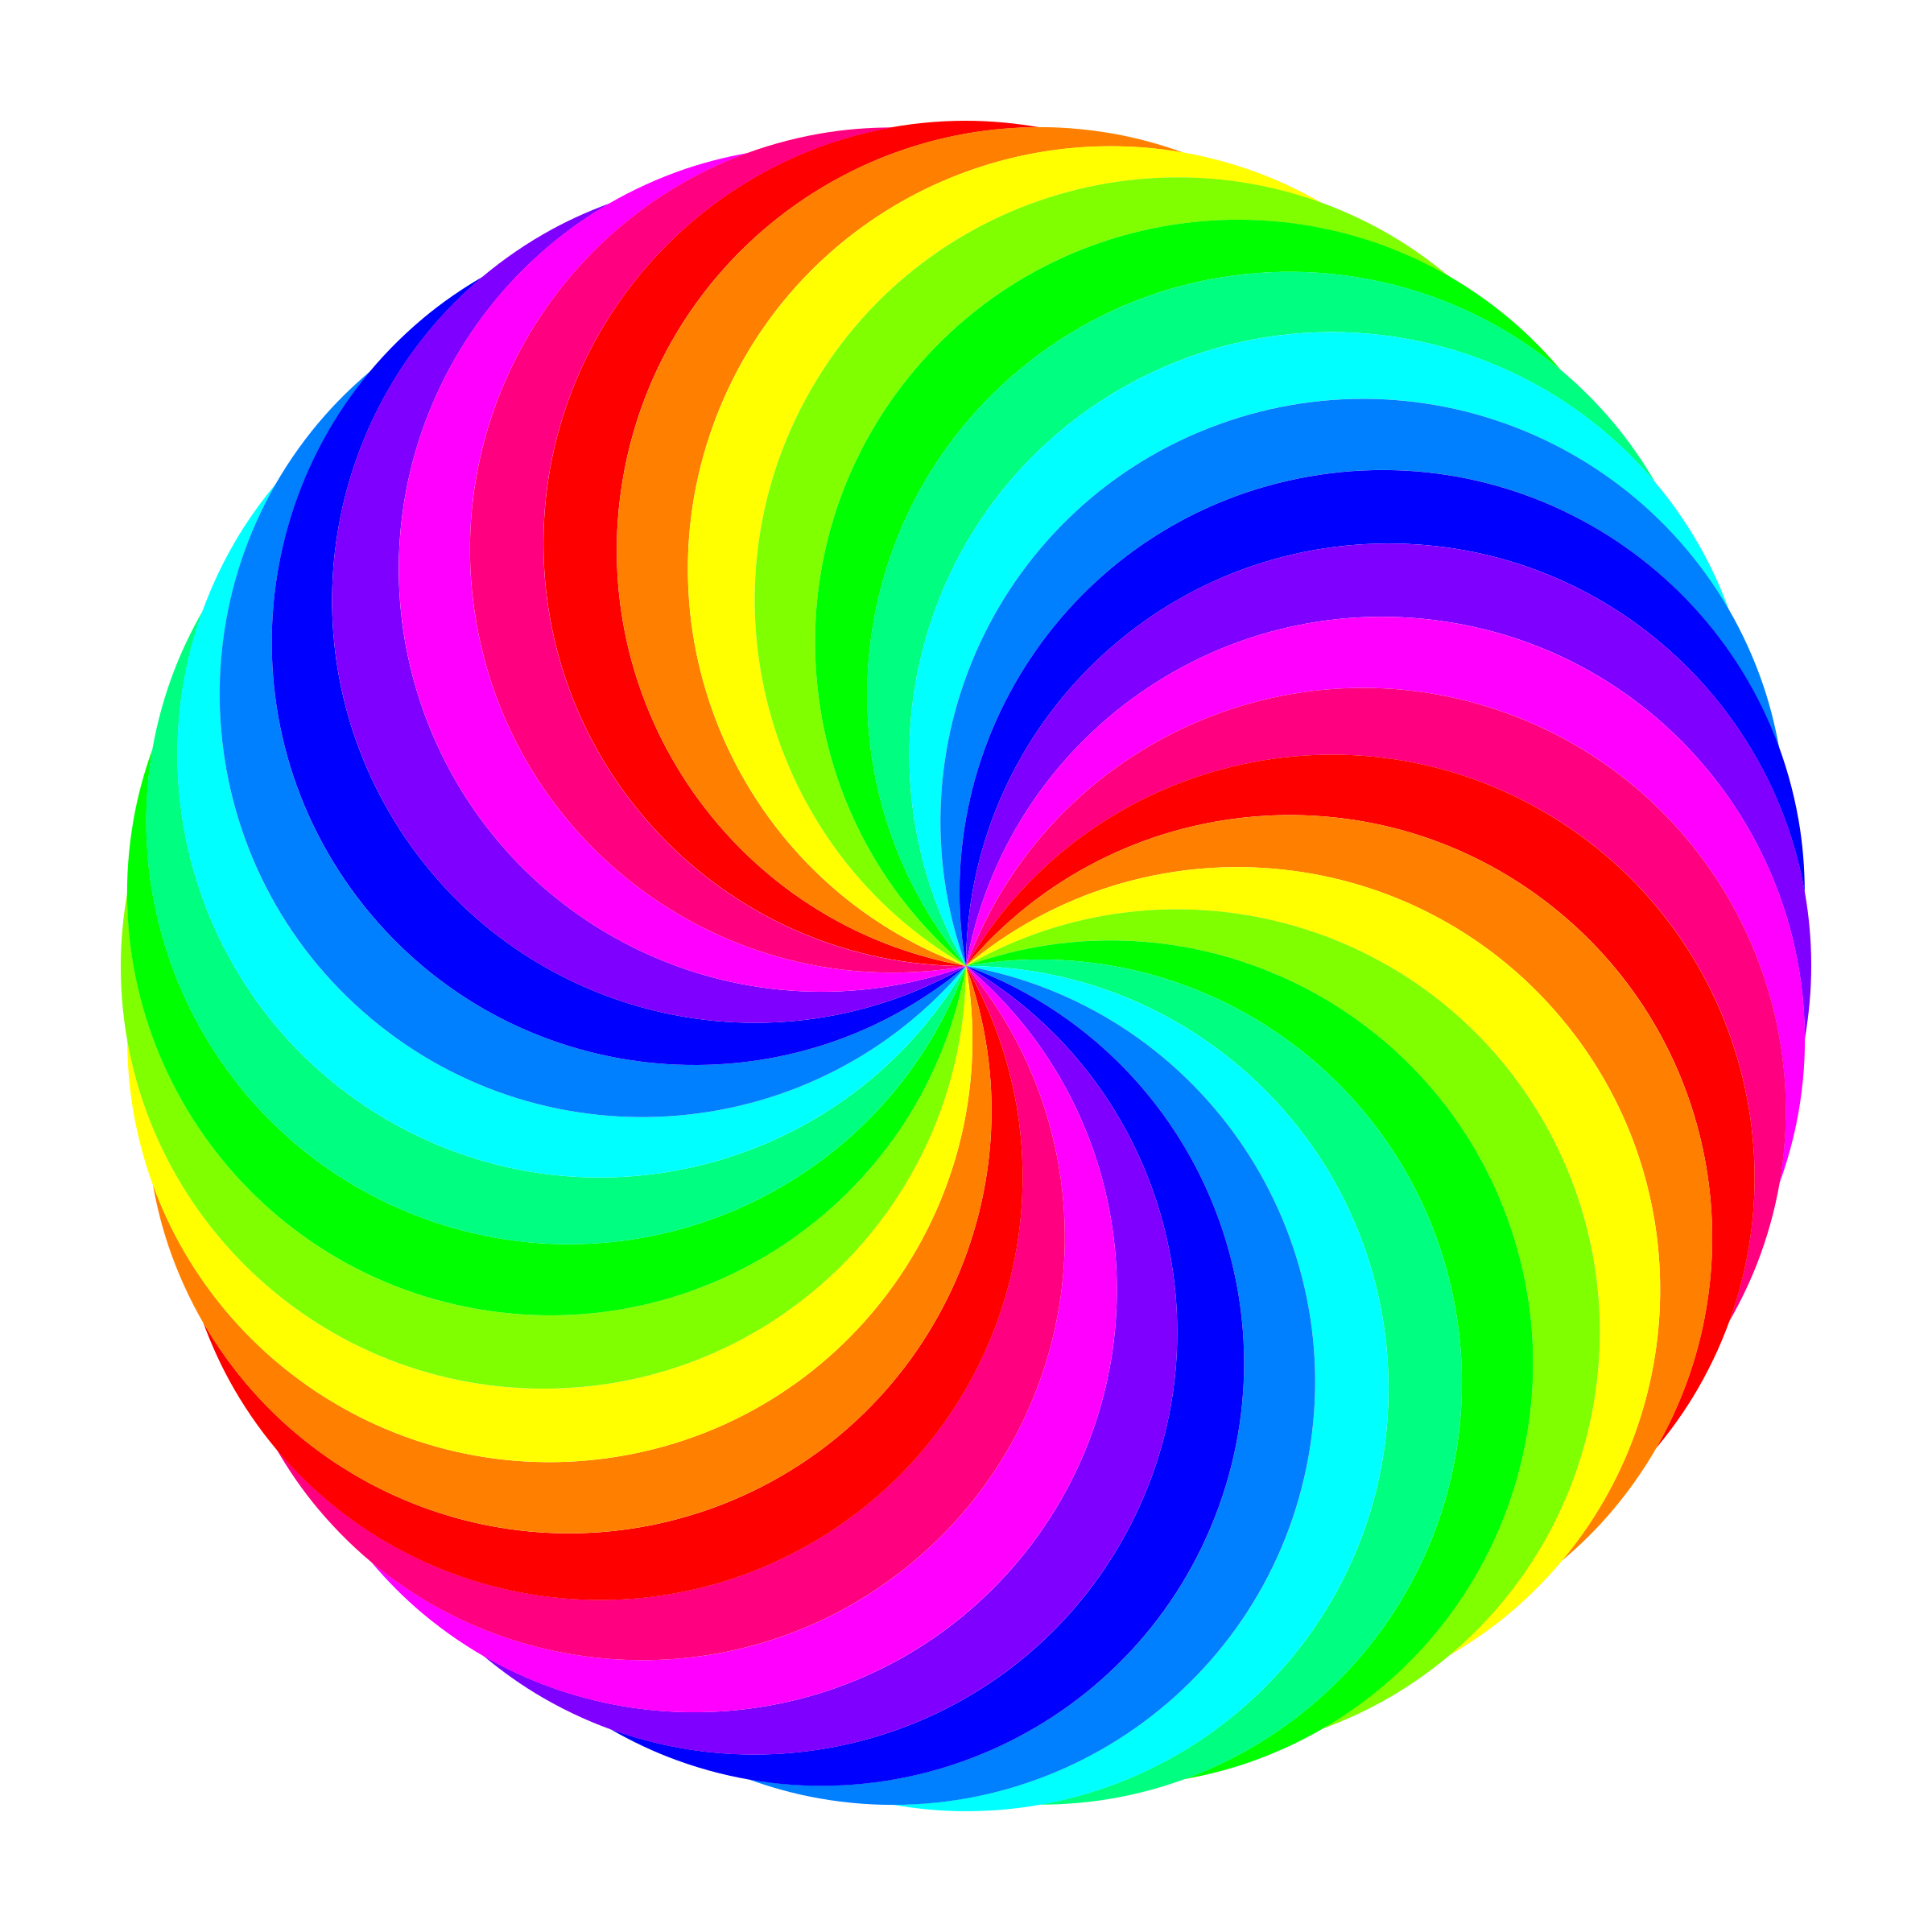 circle swirl by. Potato clipart color